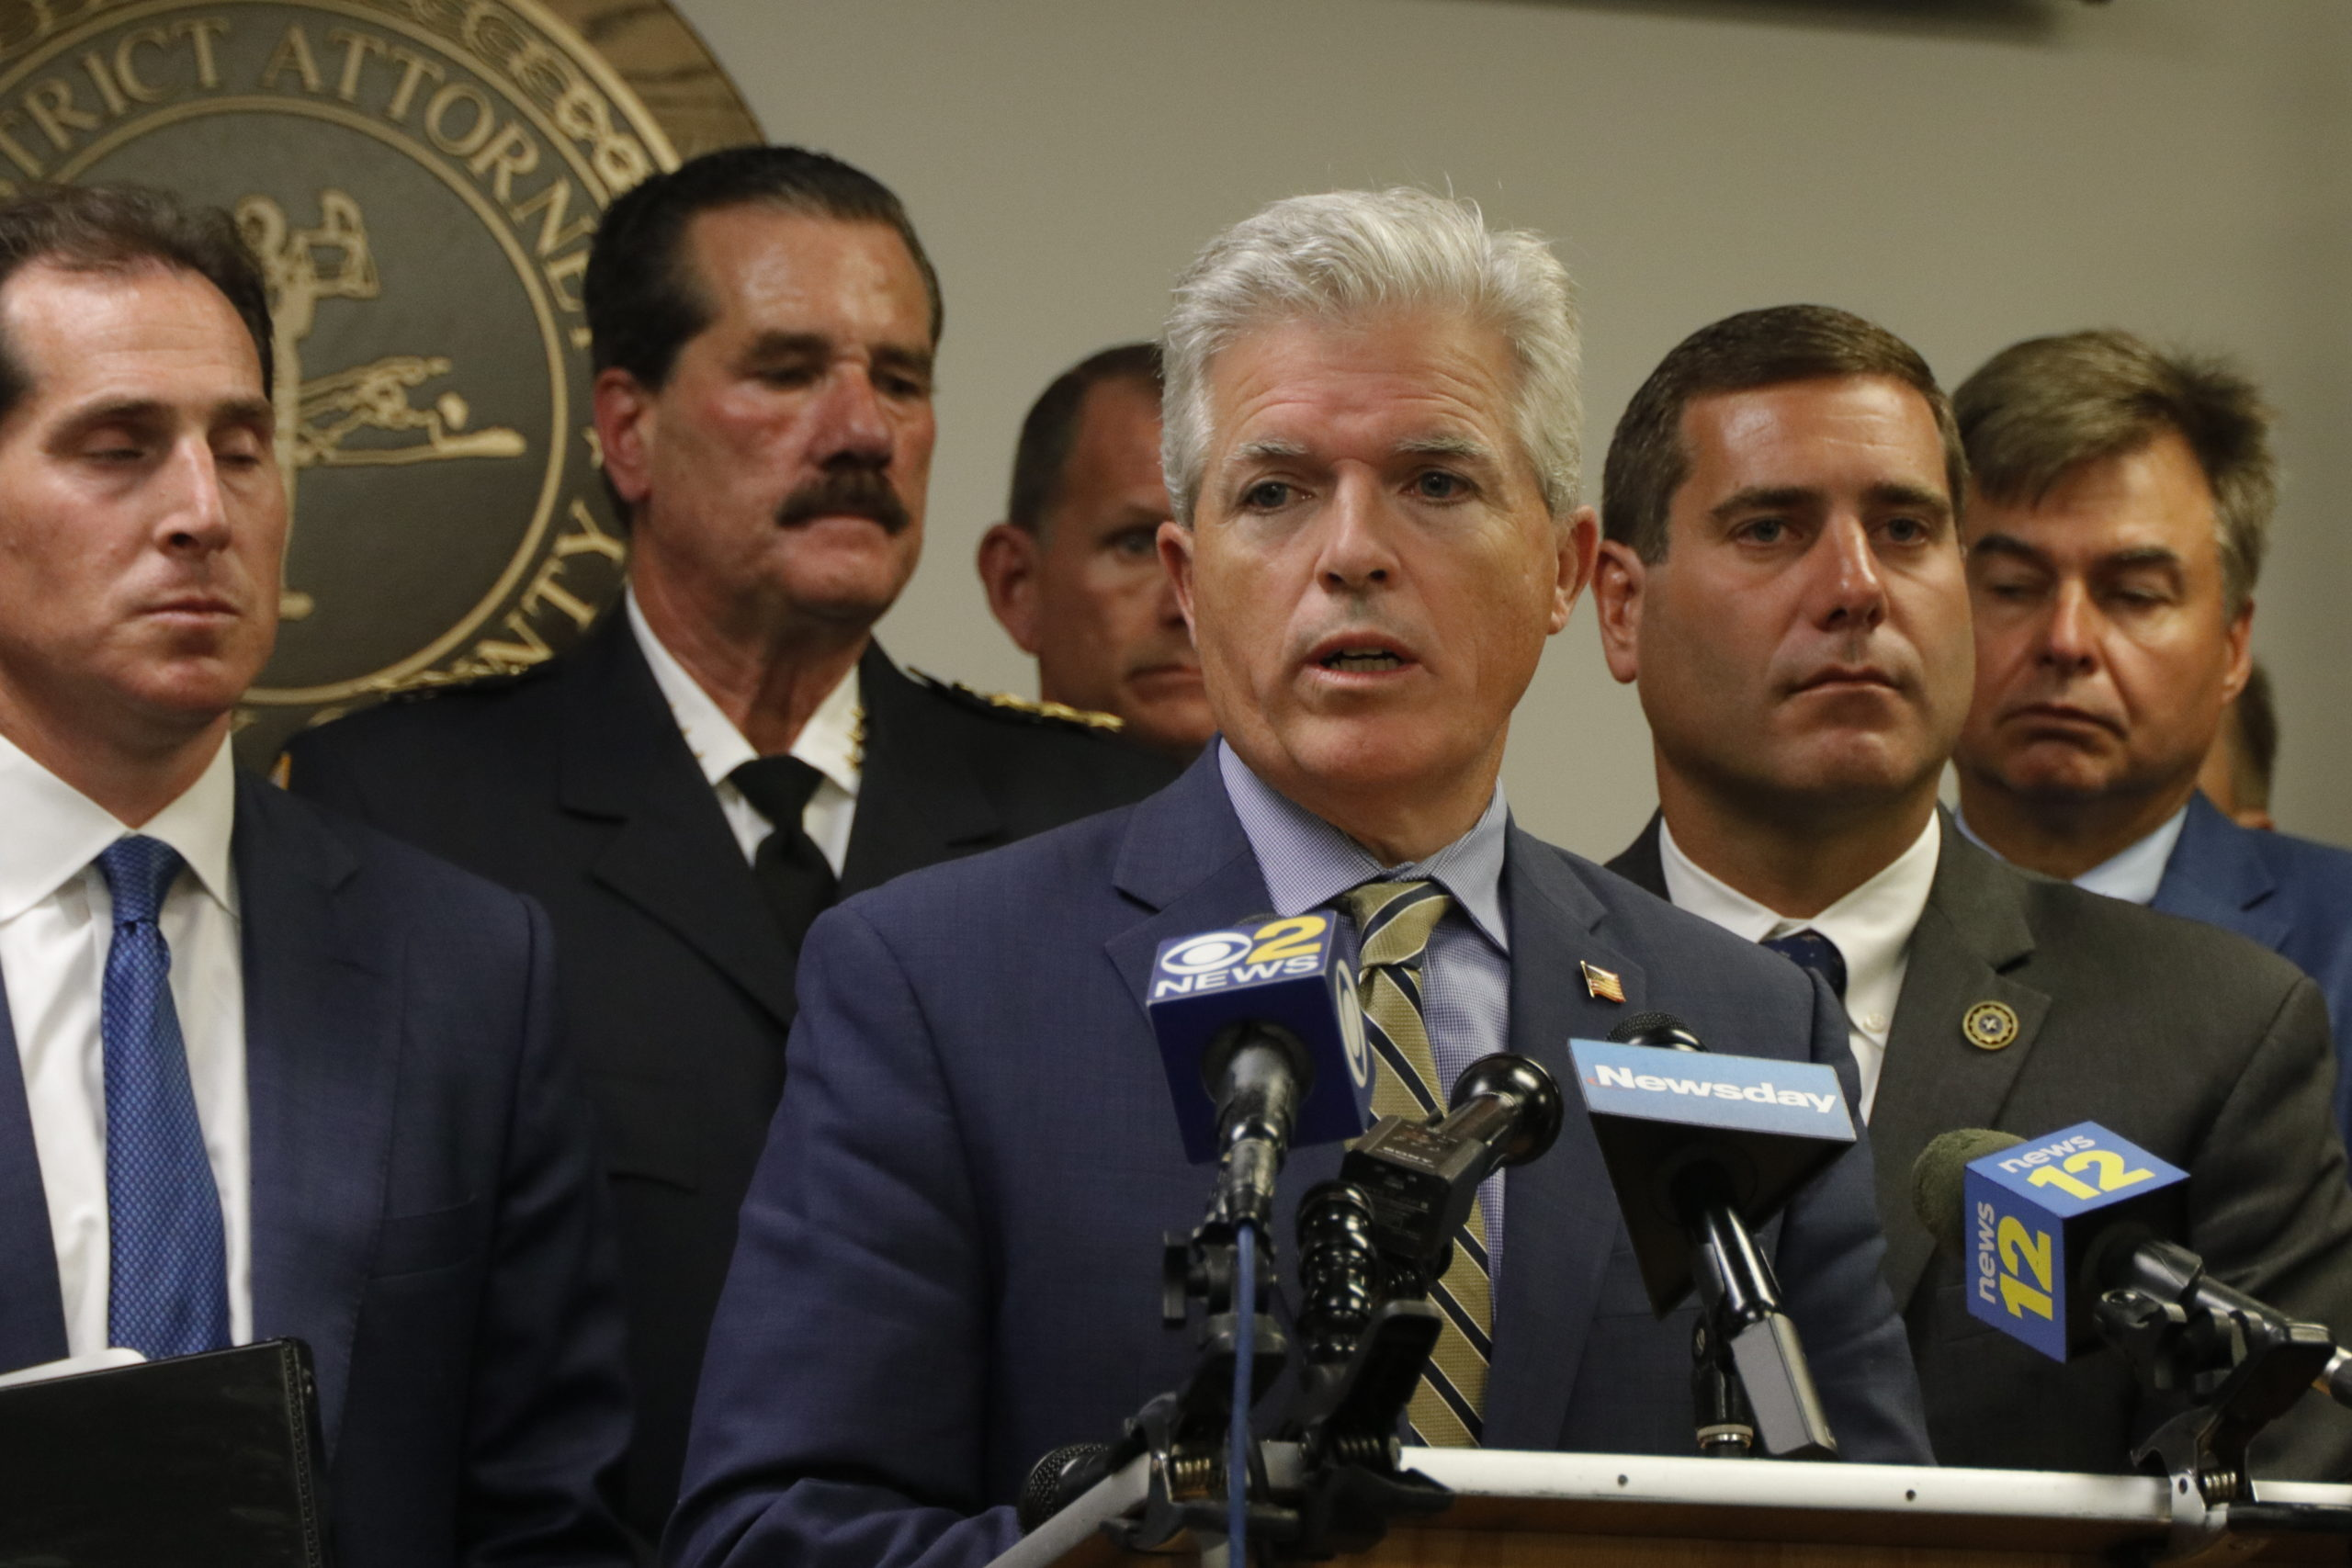 Suffolk County Executive Steve Bellone urged  the passage of the